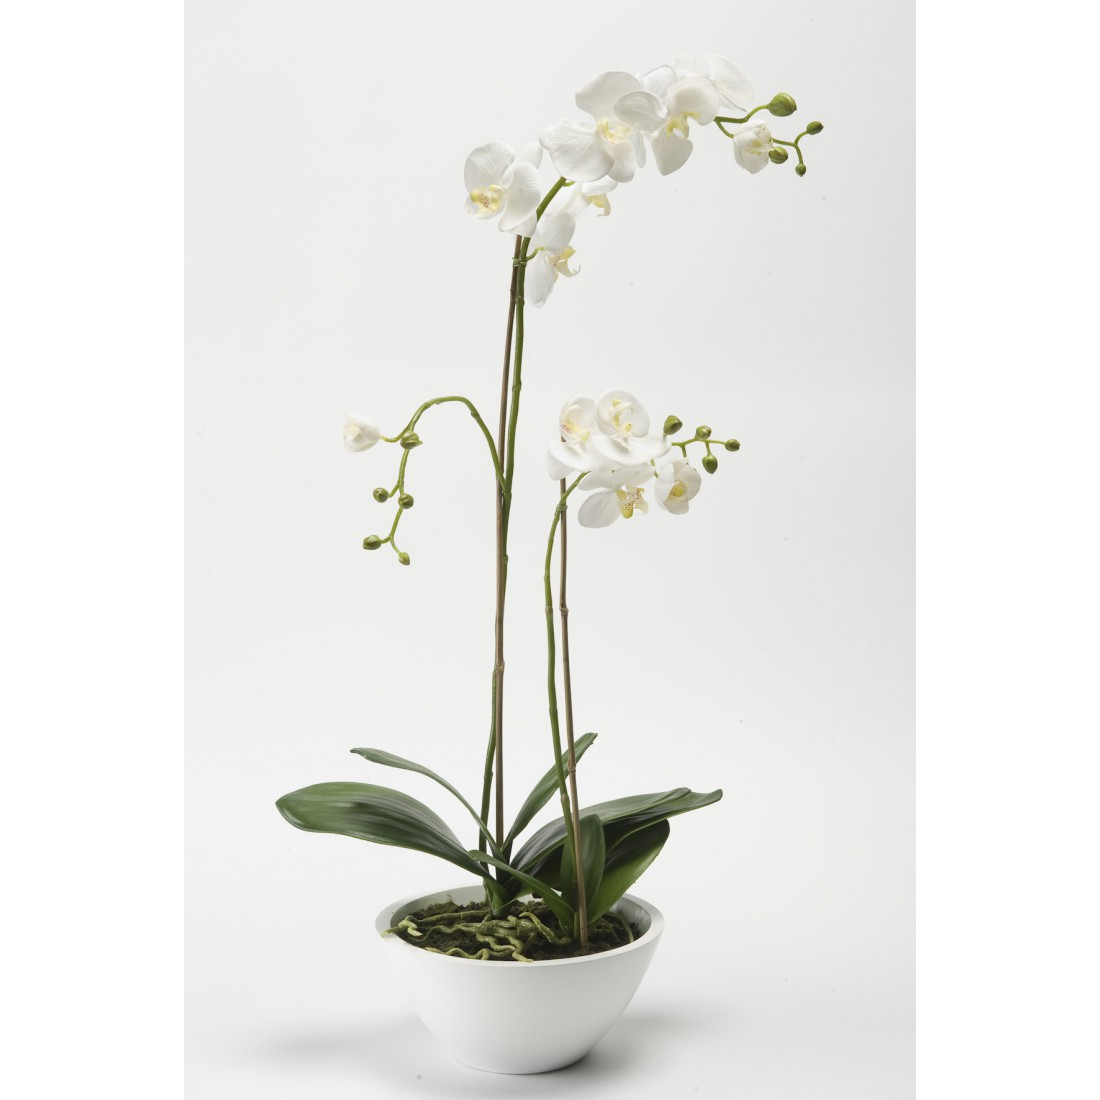 composition phalaenopsis orchidee artificielle en pot 90 cm blanc compositions artificielles. Black Bedroom Furniture Sets. Home Design Ideas